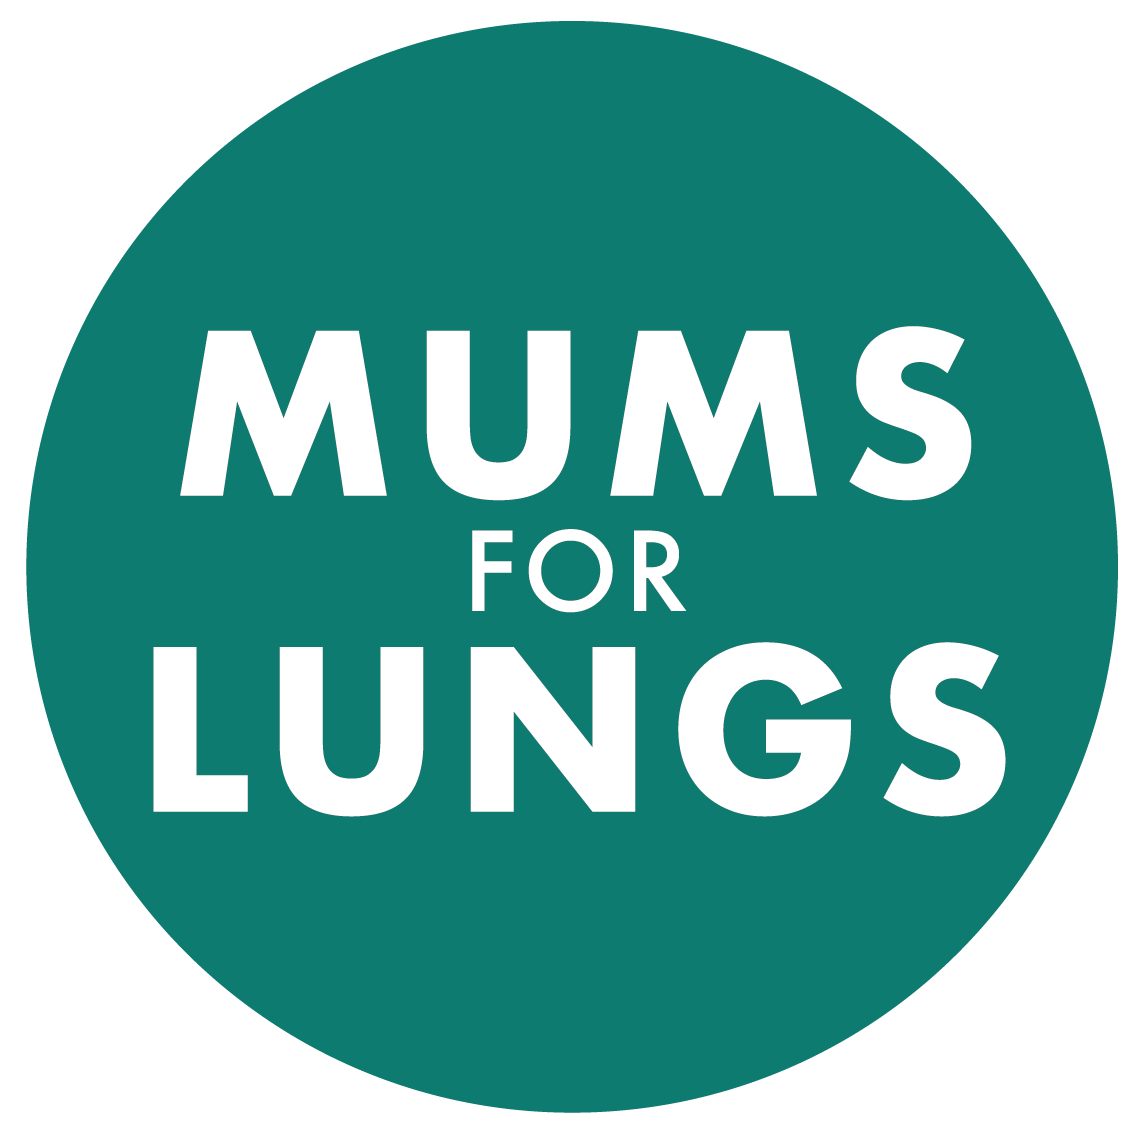 mums for lungs logo